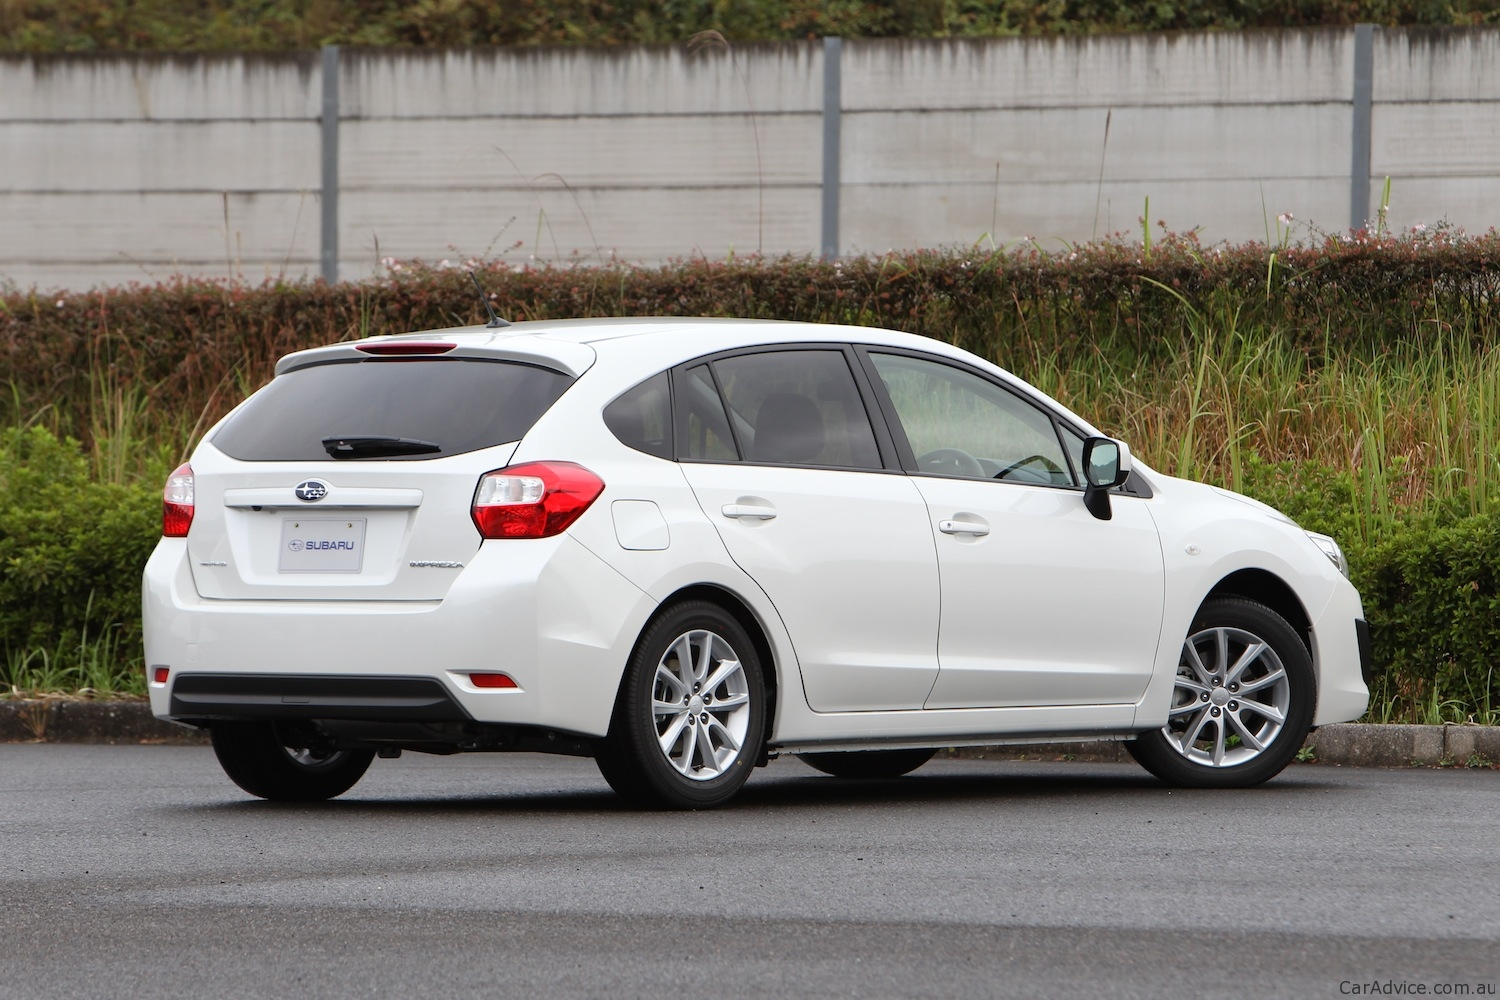 2012 Subaru Impreza Review - photos | CarAdvice